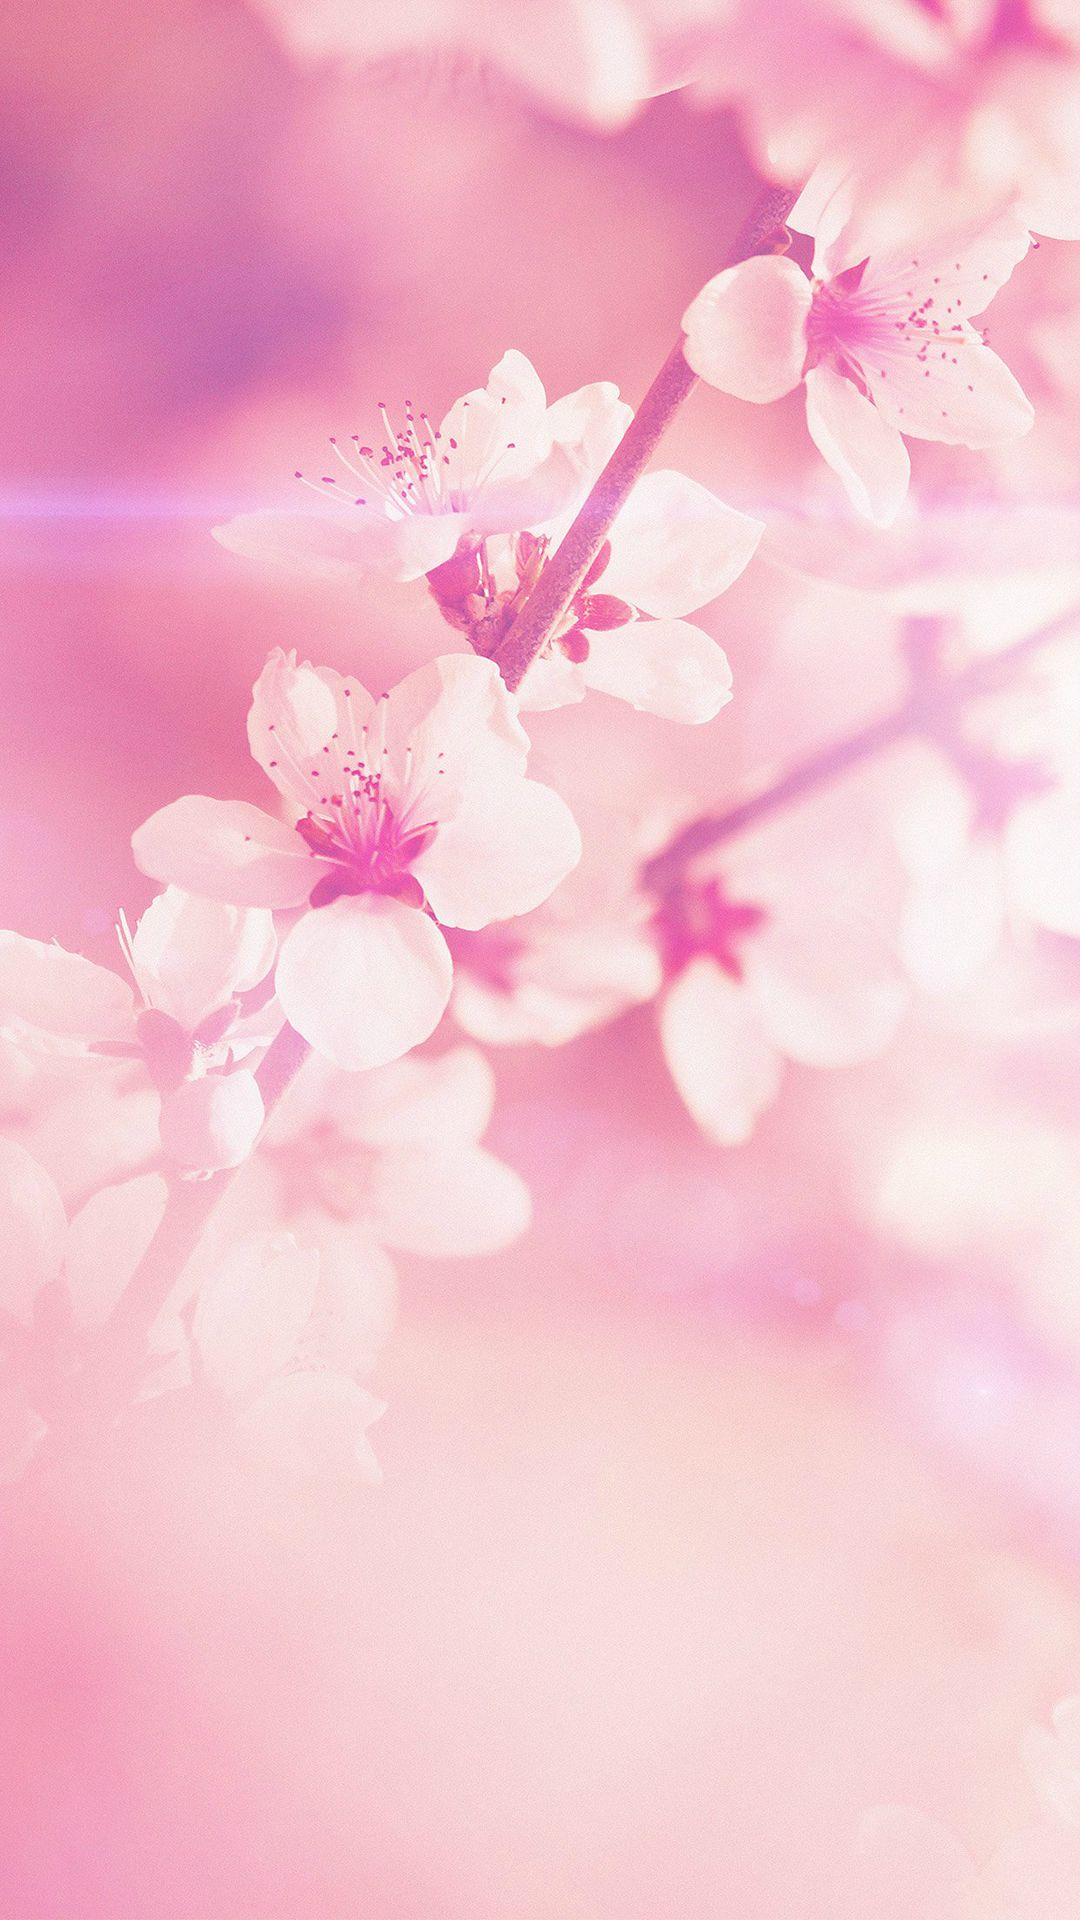 Pictures of flowers for cell phone pinterest flower backgrounds pictures of flowers for cell phone abstract flowers photo of pretty flowers backgrounds in pink beautiful backgrounds sazum 2017 hd mightylinksfo